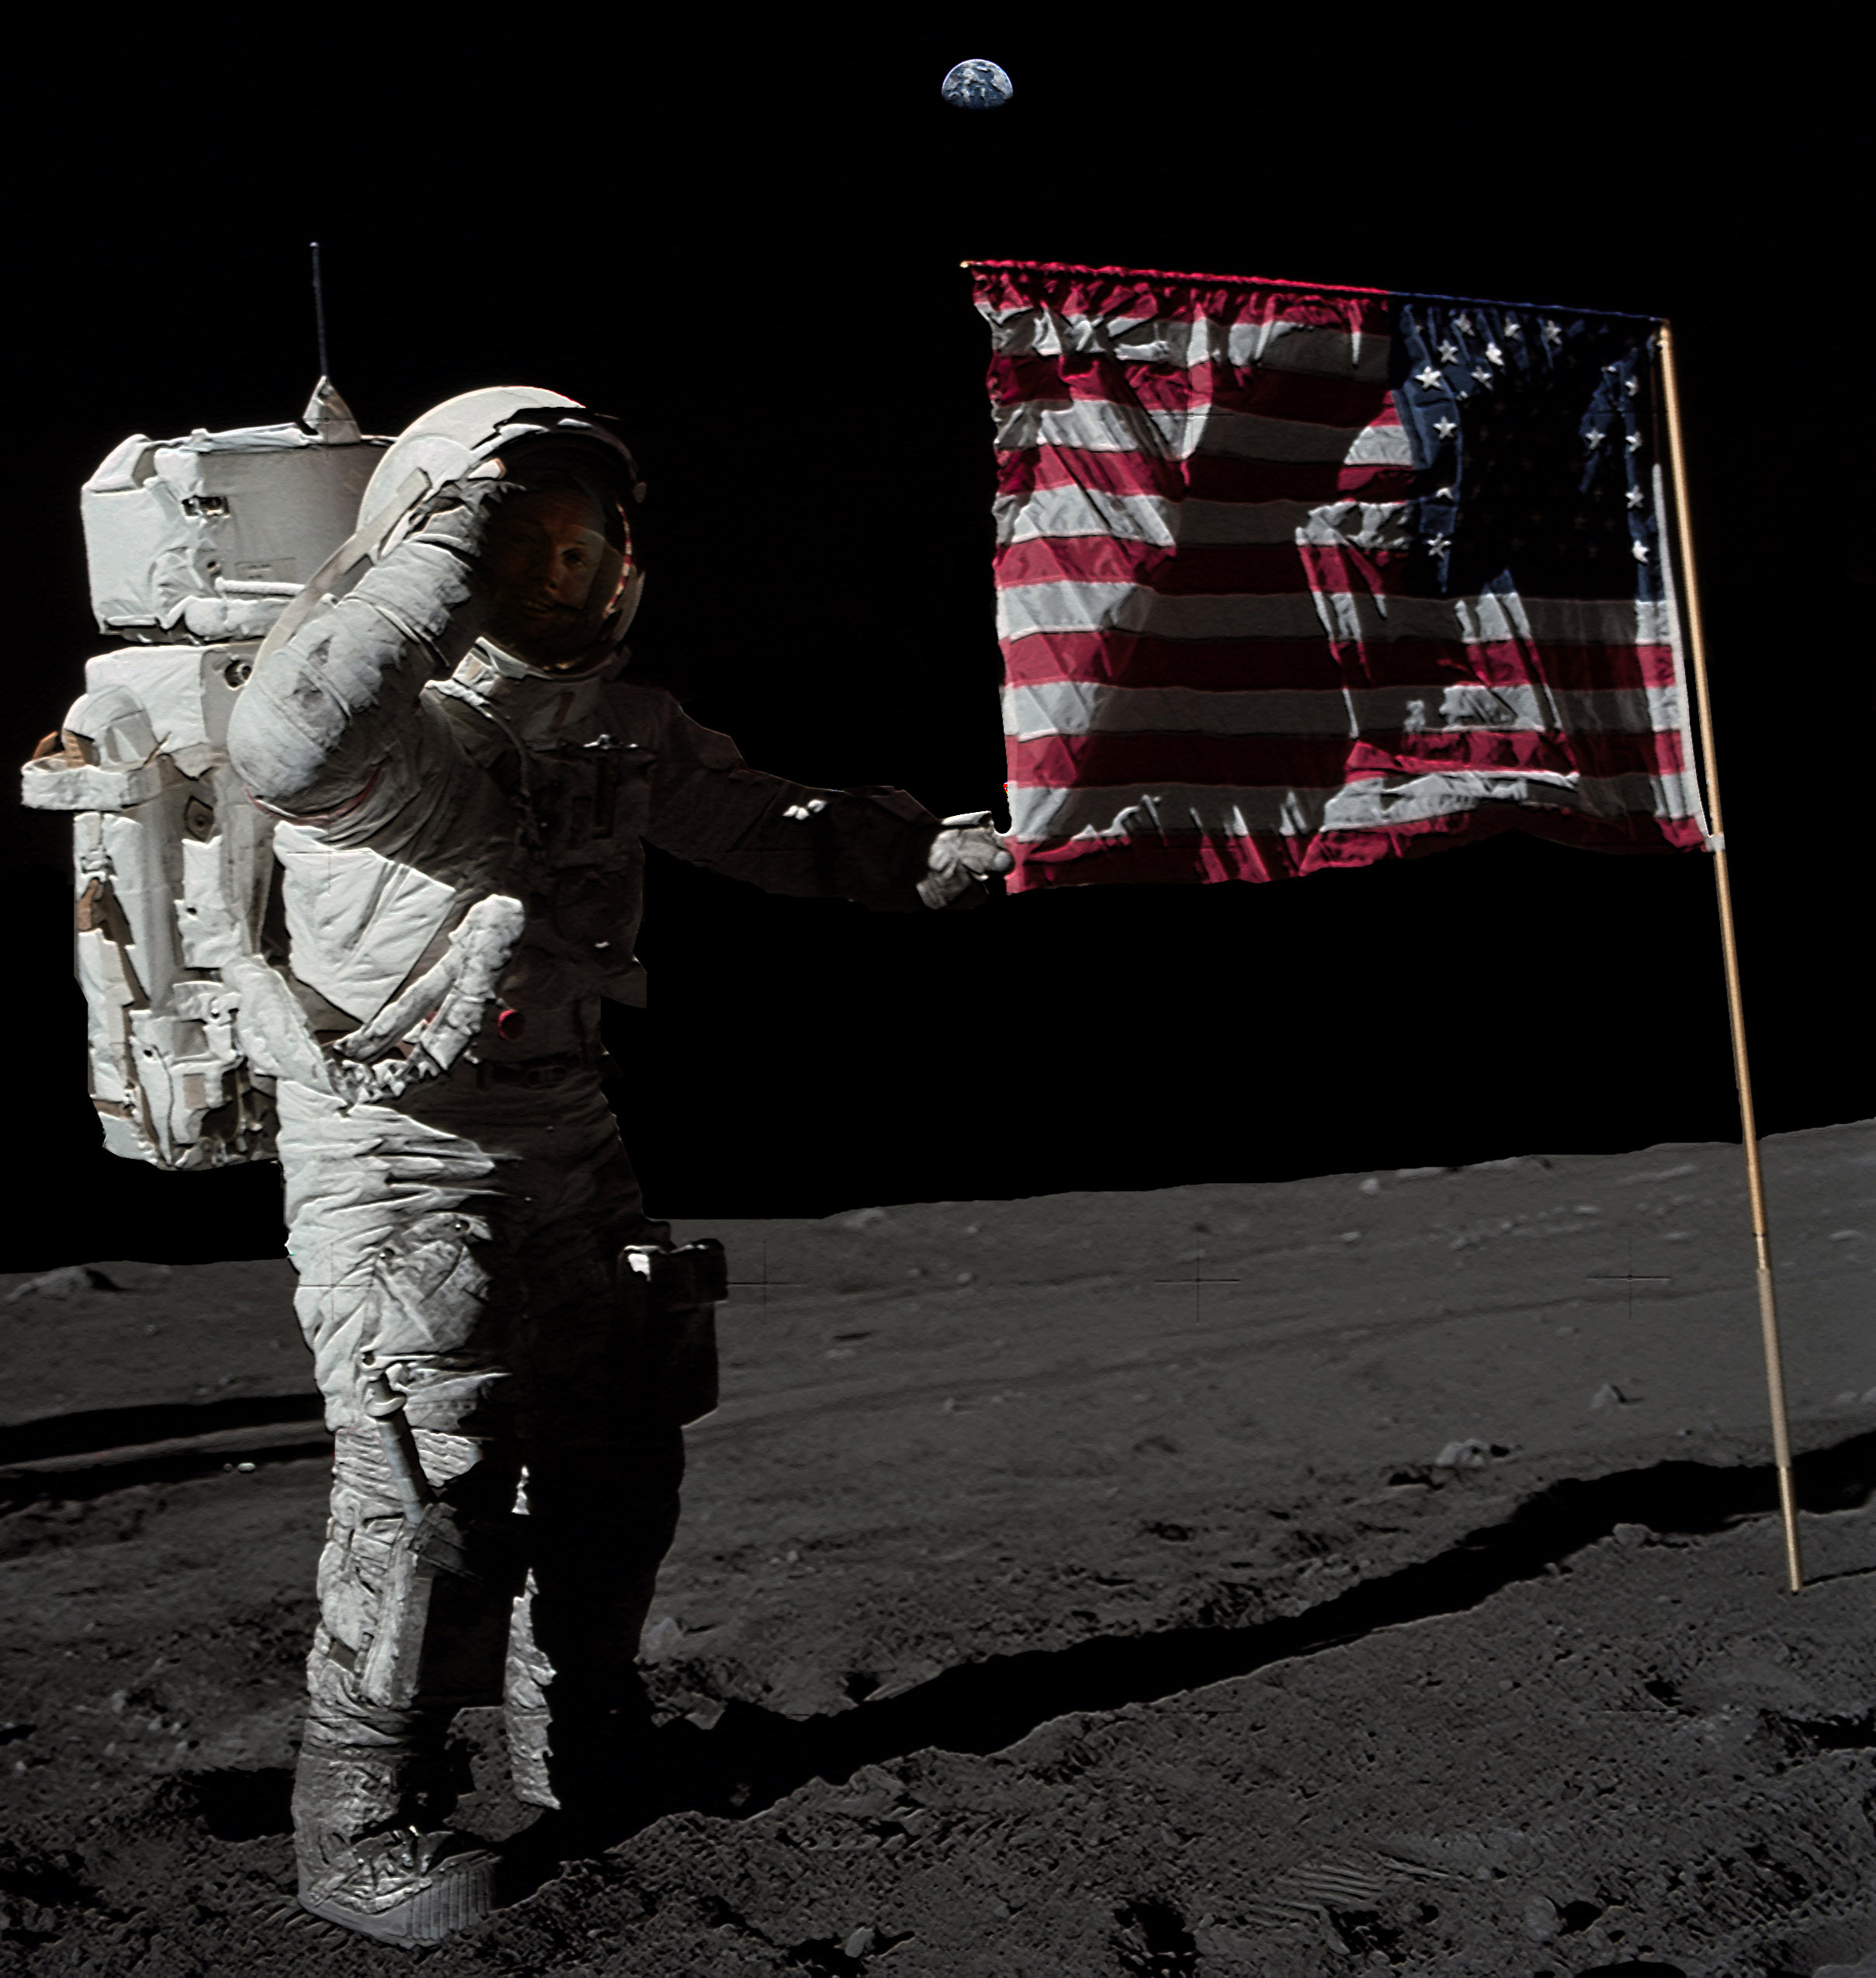 neil armstrong on the moon 1969 - photo #11